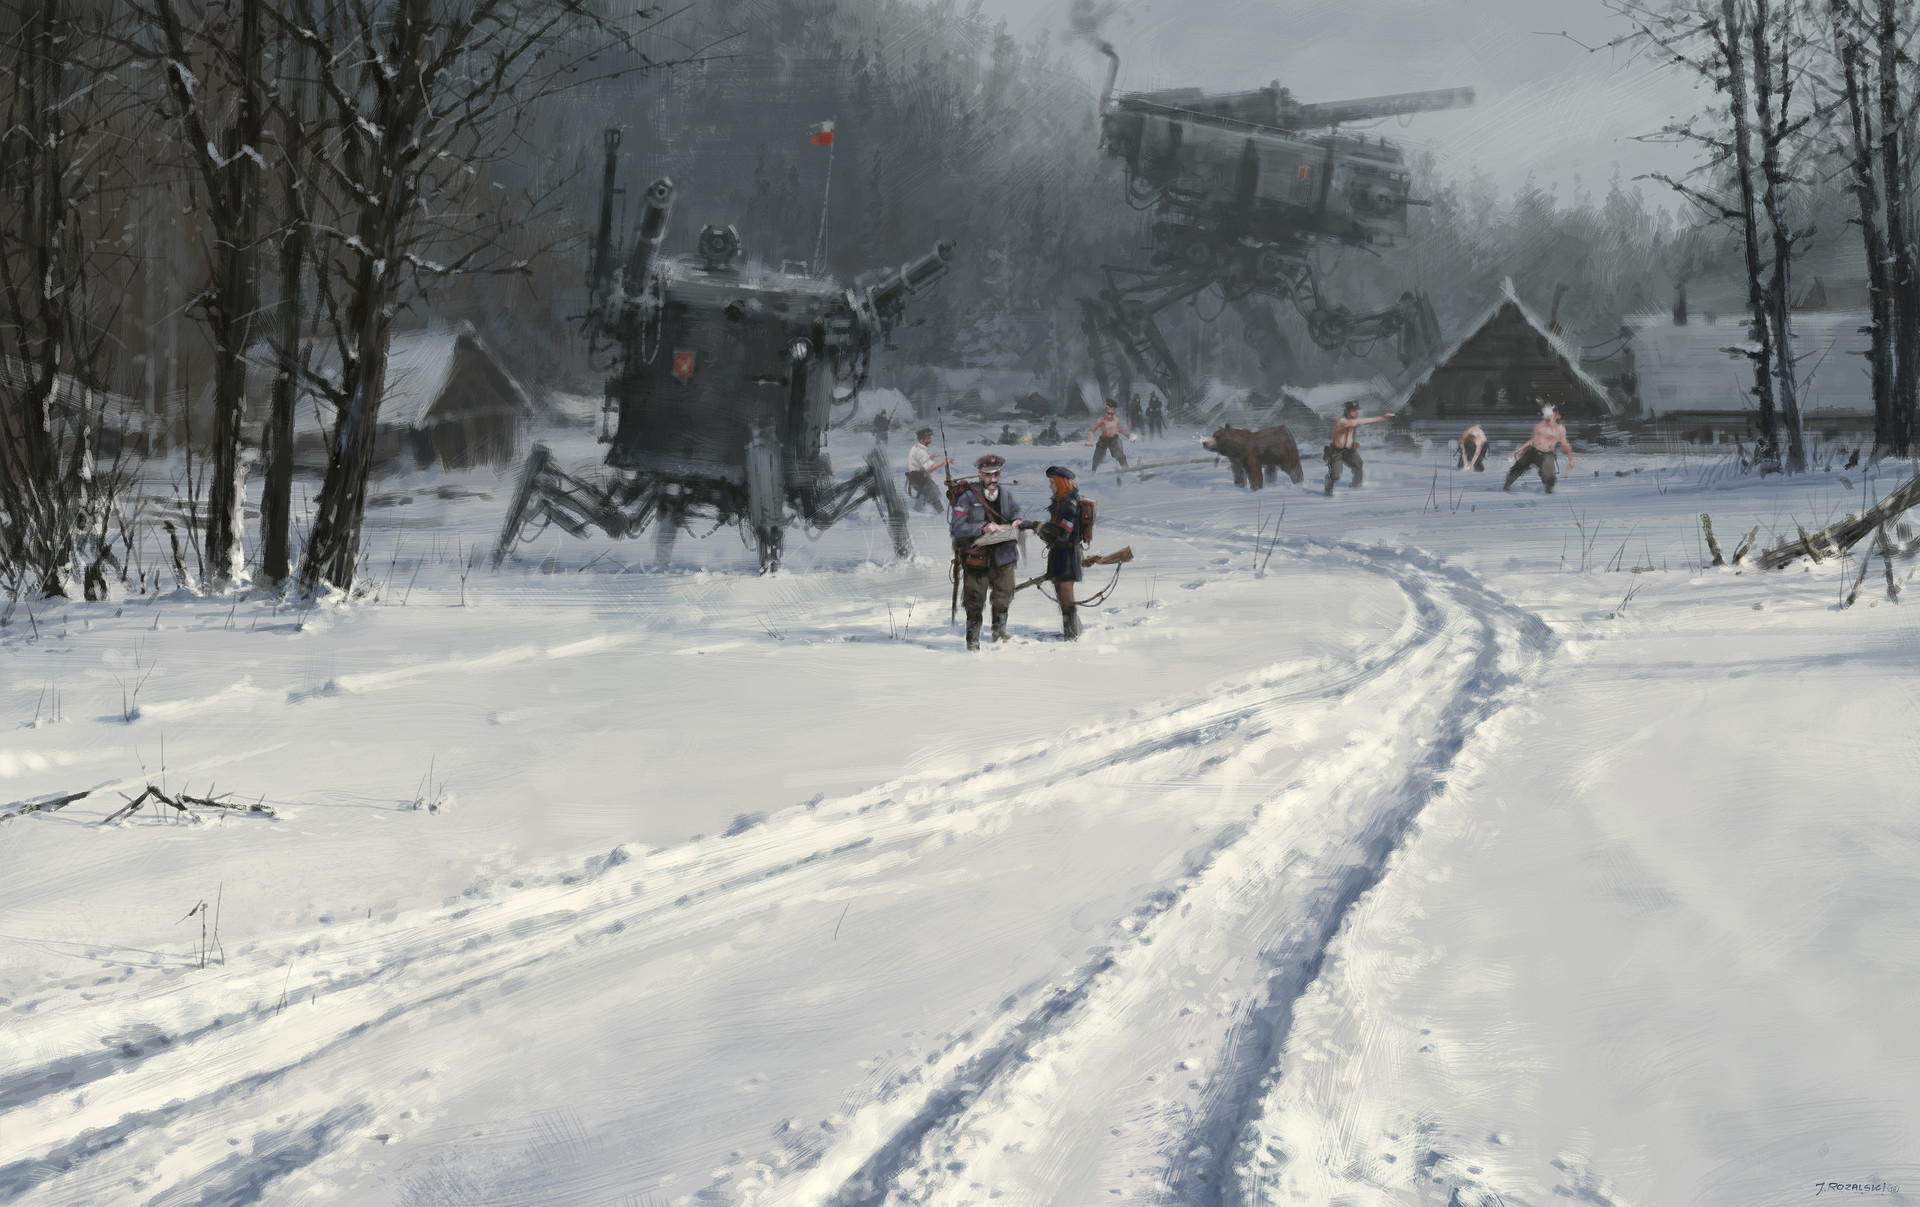 Jakub rozalski 1920 day before battles